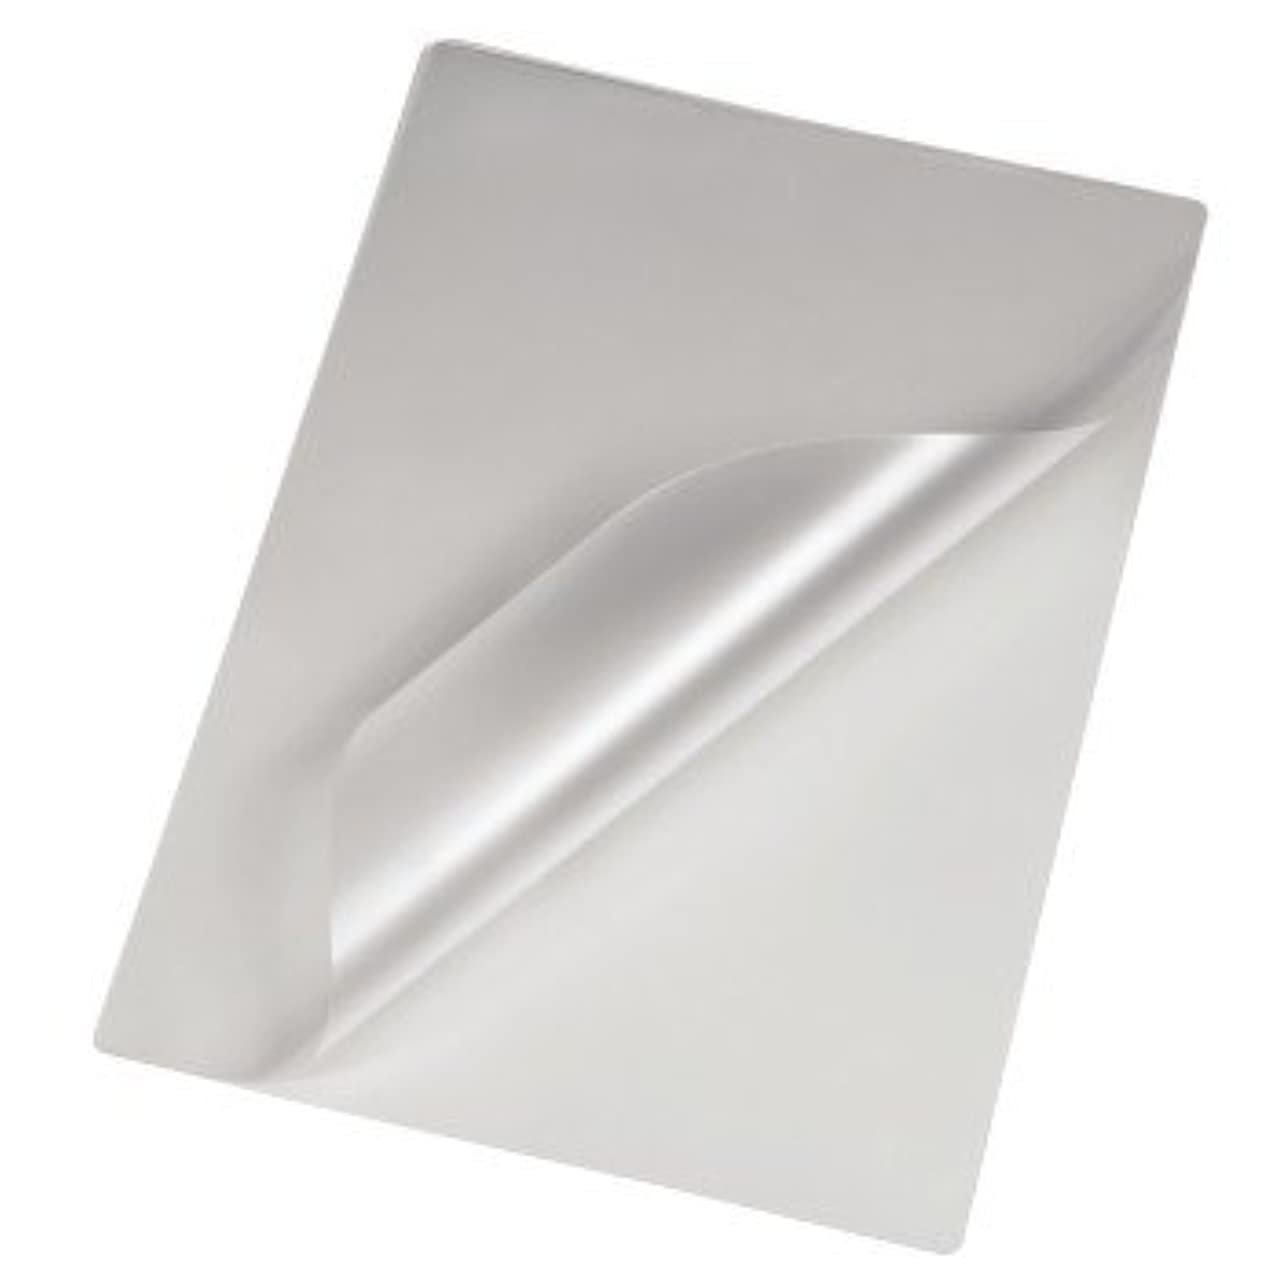 Tyh Supplies 4x6 5 Mil Hot Clear Glossy Thermal Laminating Pouches Lamination Sheet Laminator Pockets 4.37